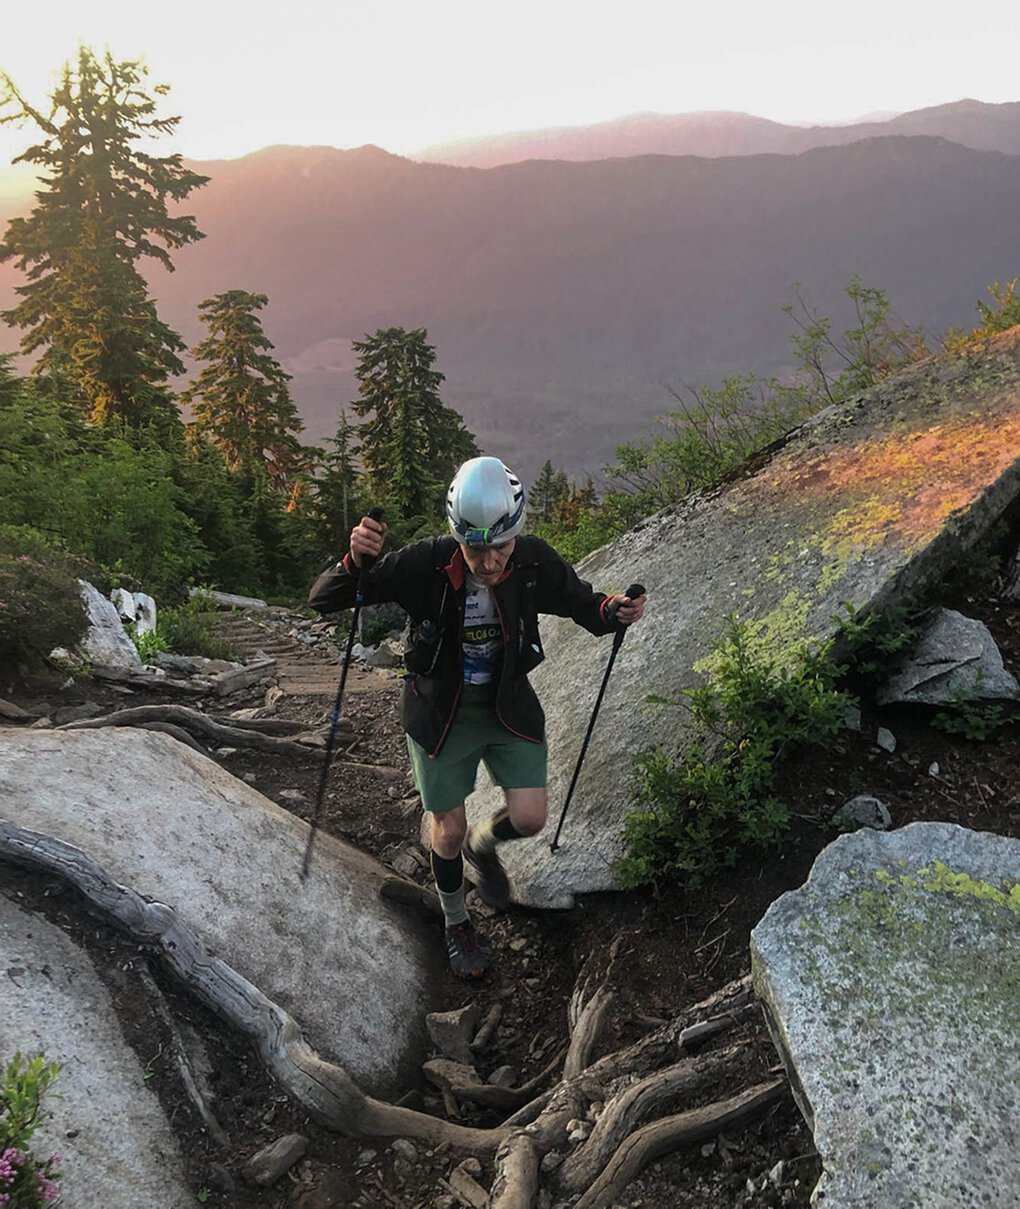 Randall Nordfors climbs through rocks on the Mount Pilchuck Trail in July, 2020, just before sunset, after summiting Glacier Peak that same day.  This photo was taken on his 23rd hour, summiting  his second peak of the day, Mount Pilchuck, 5,324ft, shortly after this photo was taken.  (Aaron Mainer)